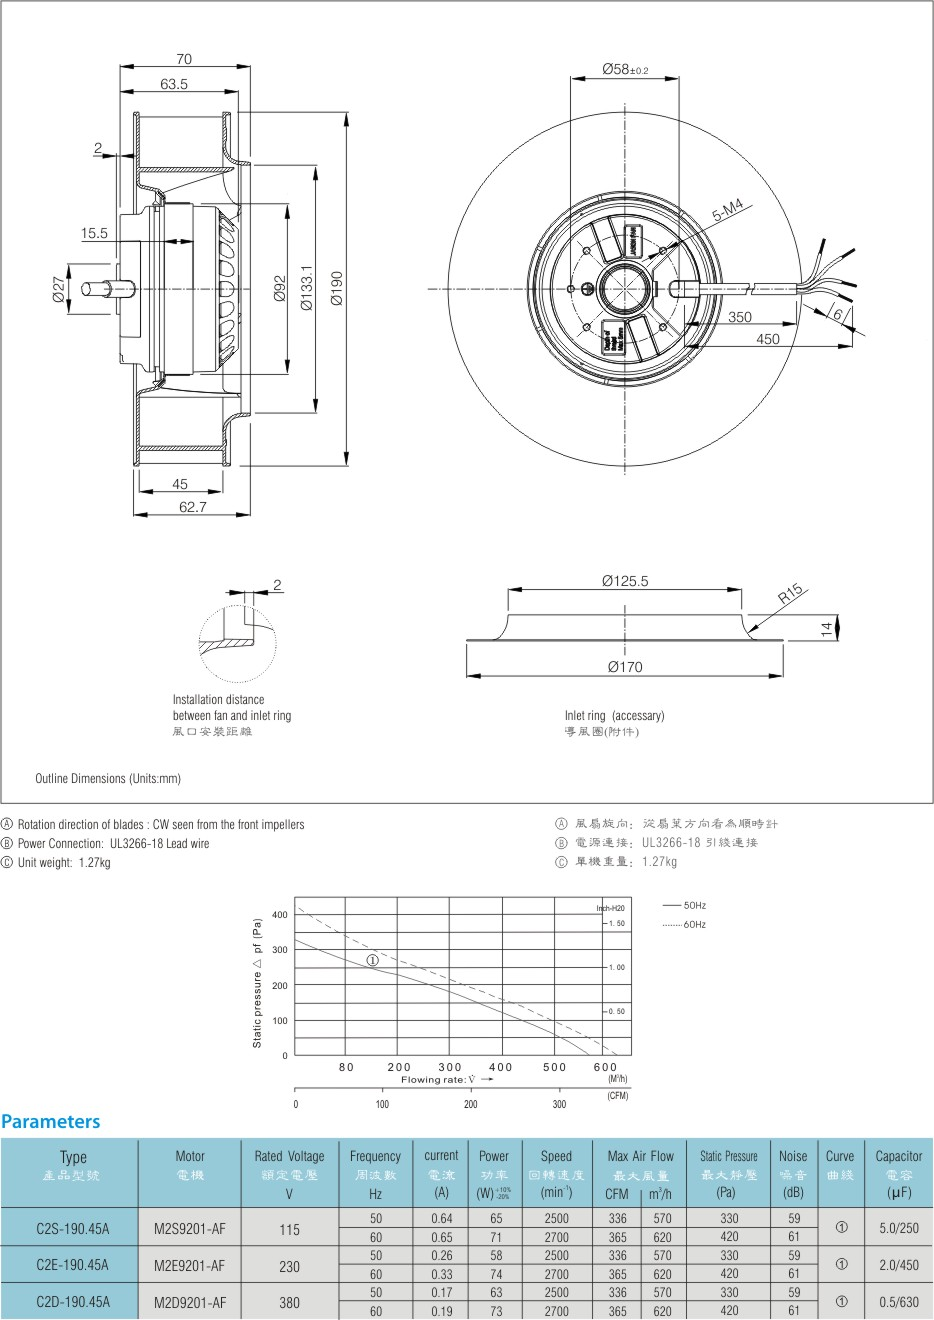 AC Centrifugal Backward Curved Fan 190 mm(7.5 in) External Rotor Motor Powered Centrifugal Fan C2S-190.45A